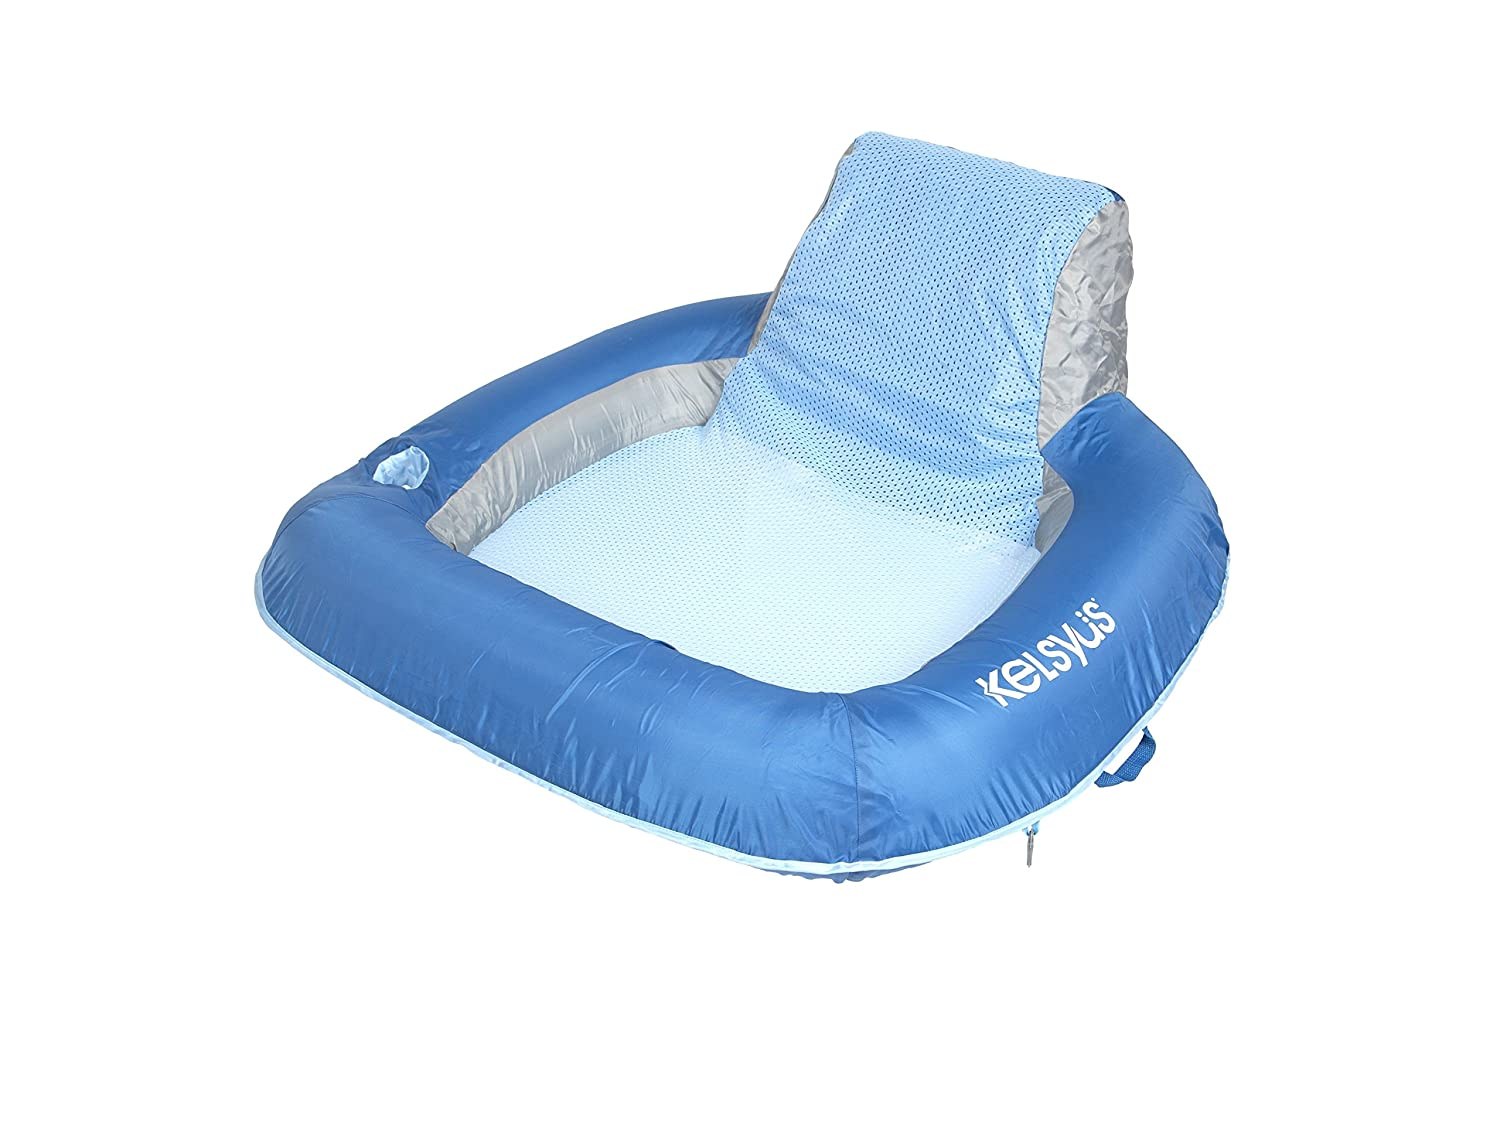 Amazon.com: SwimWays Kelsyus Floating Chair: Sports & Outdoors